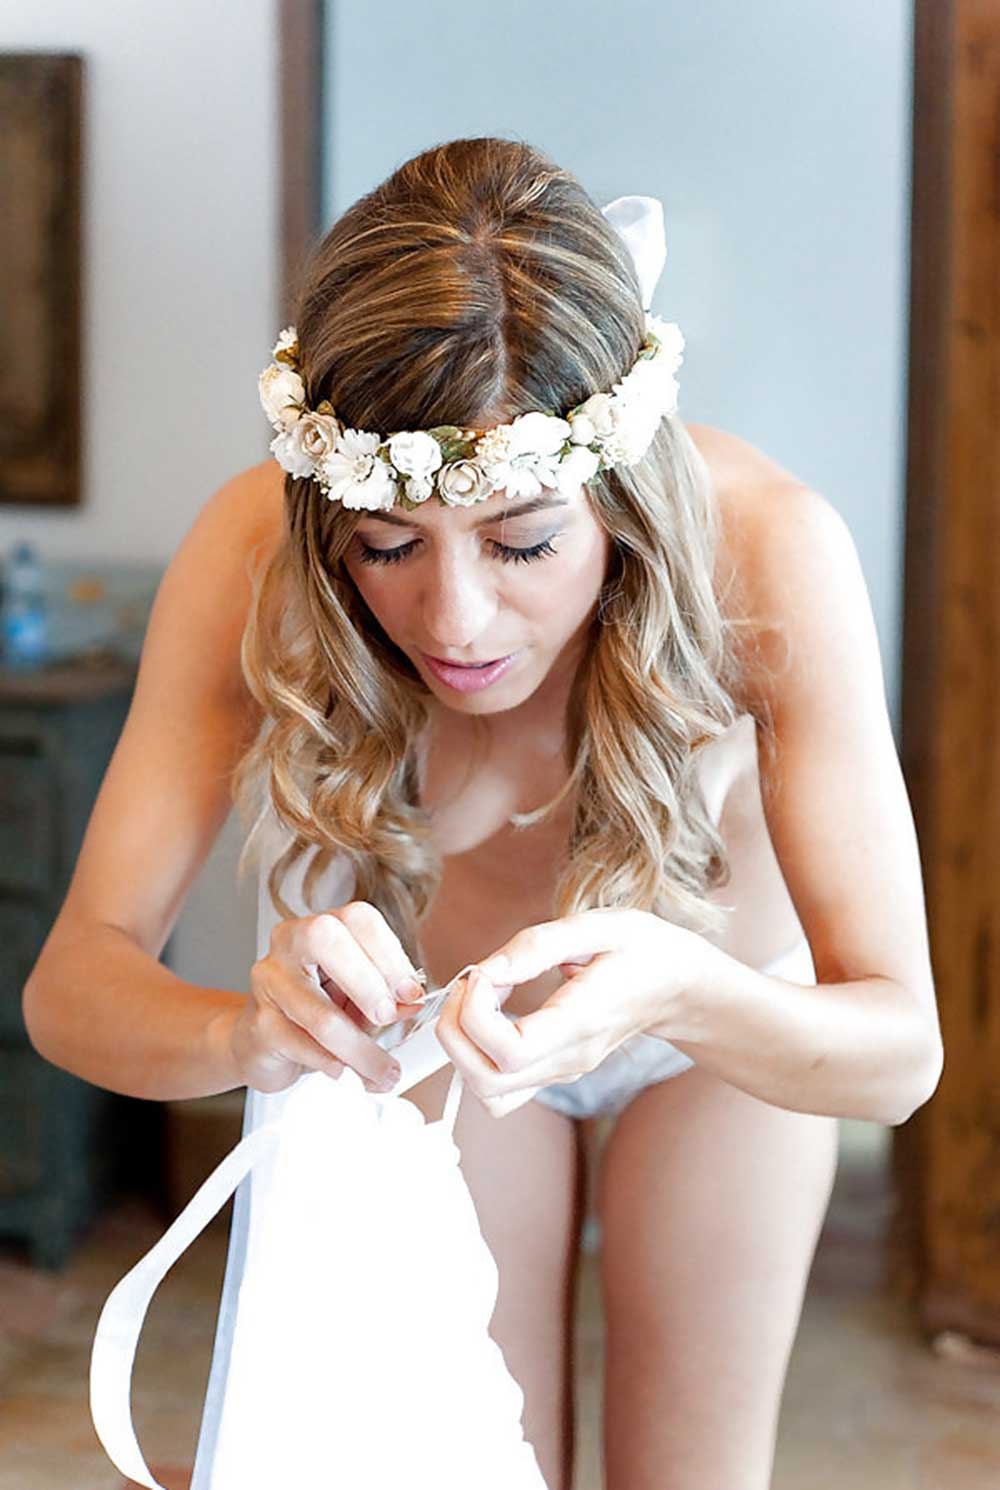 Detail of bride getting ready for the wedding